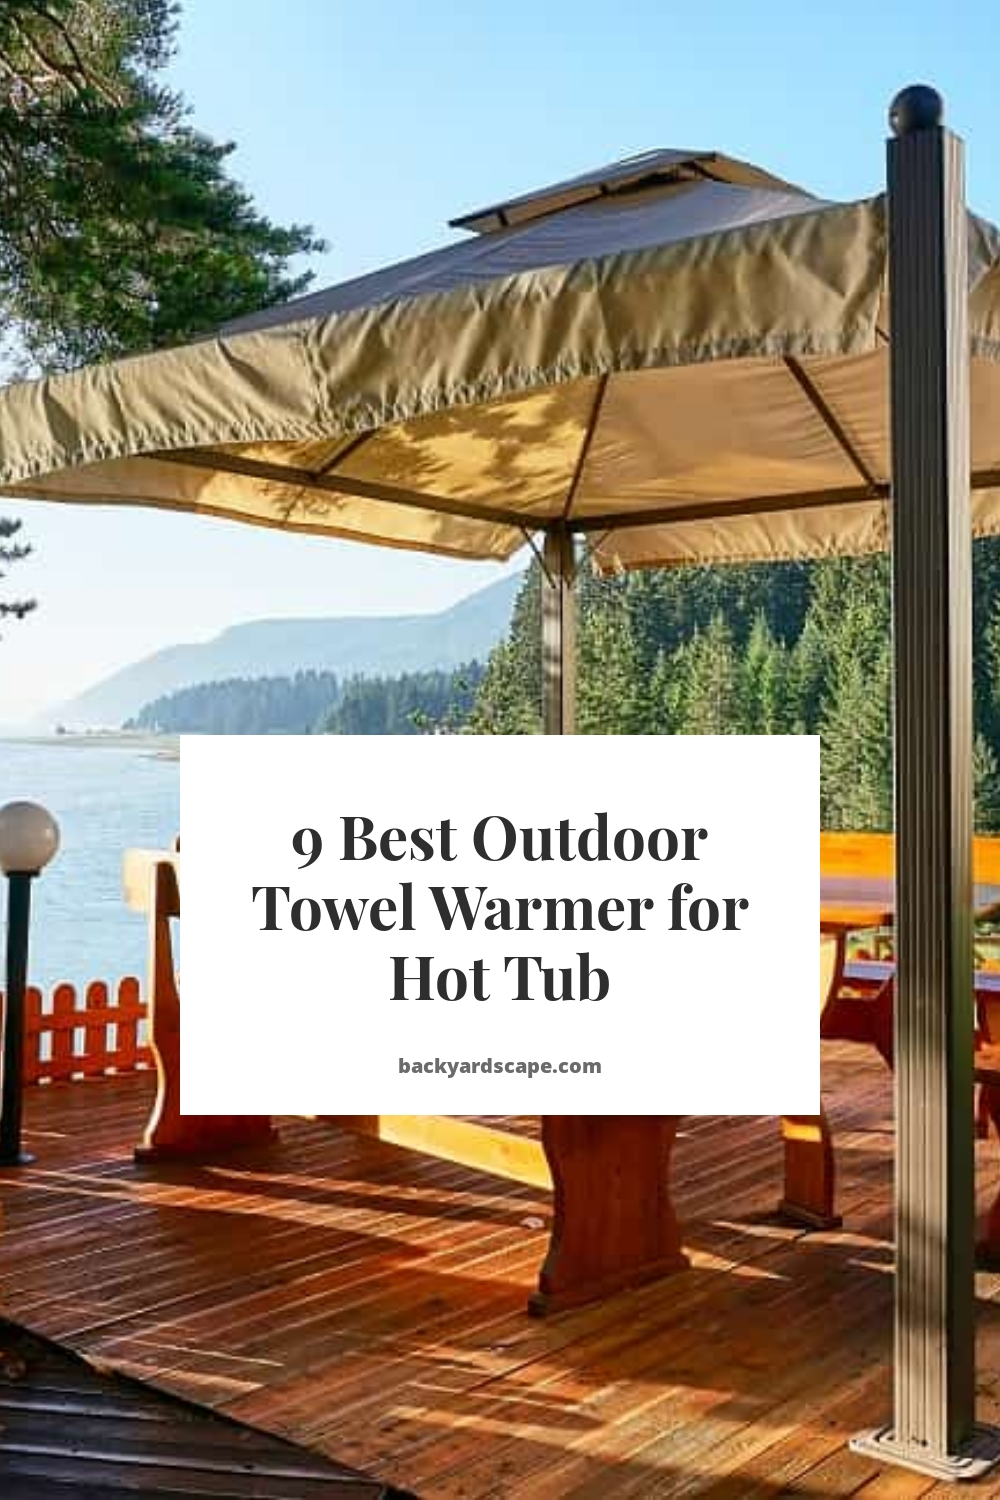 9 Best Outdoor Towel Warmer for Hot Tub